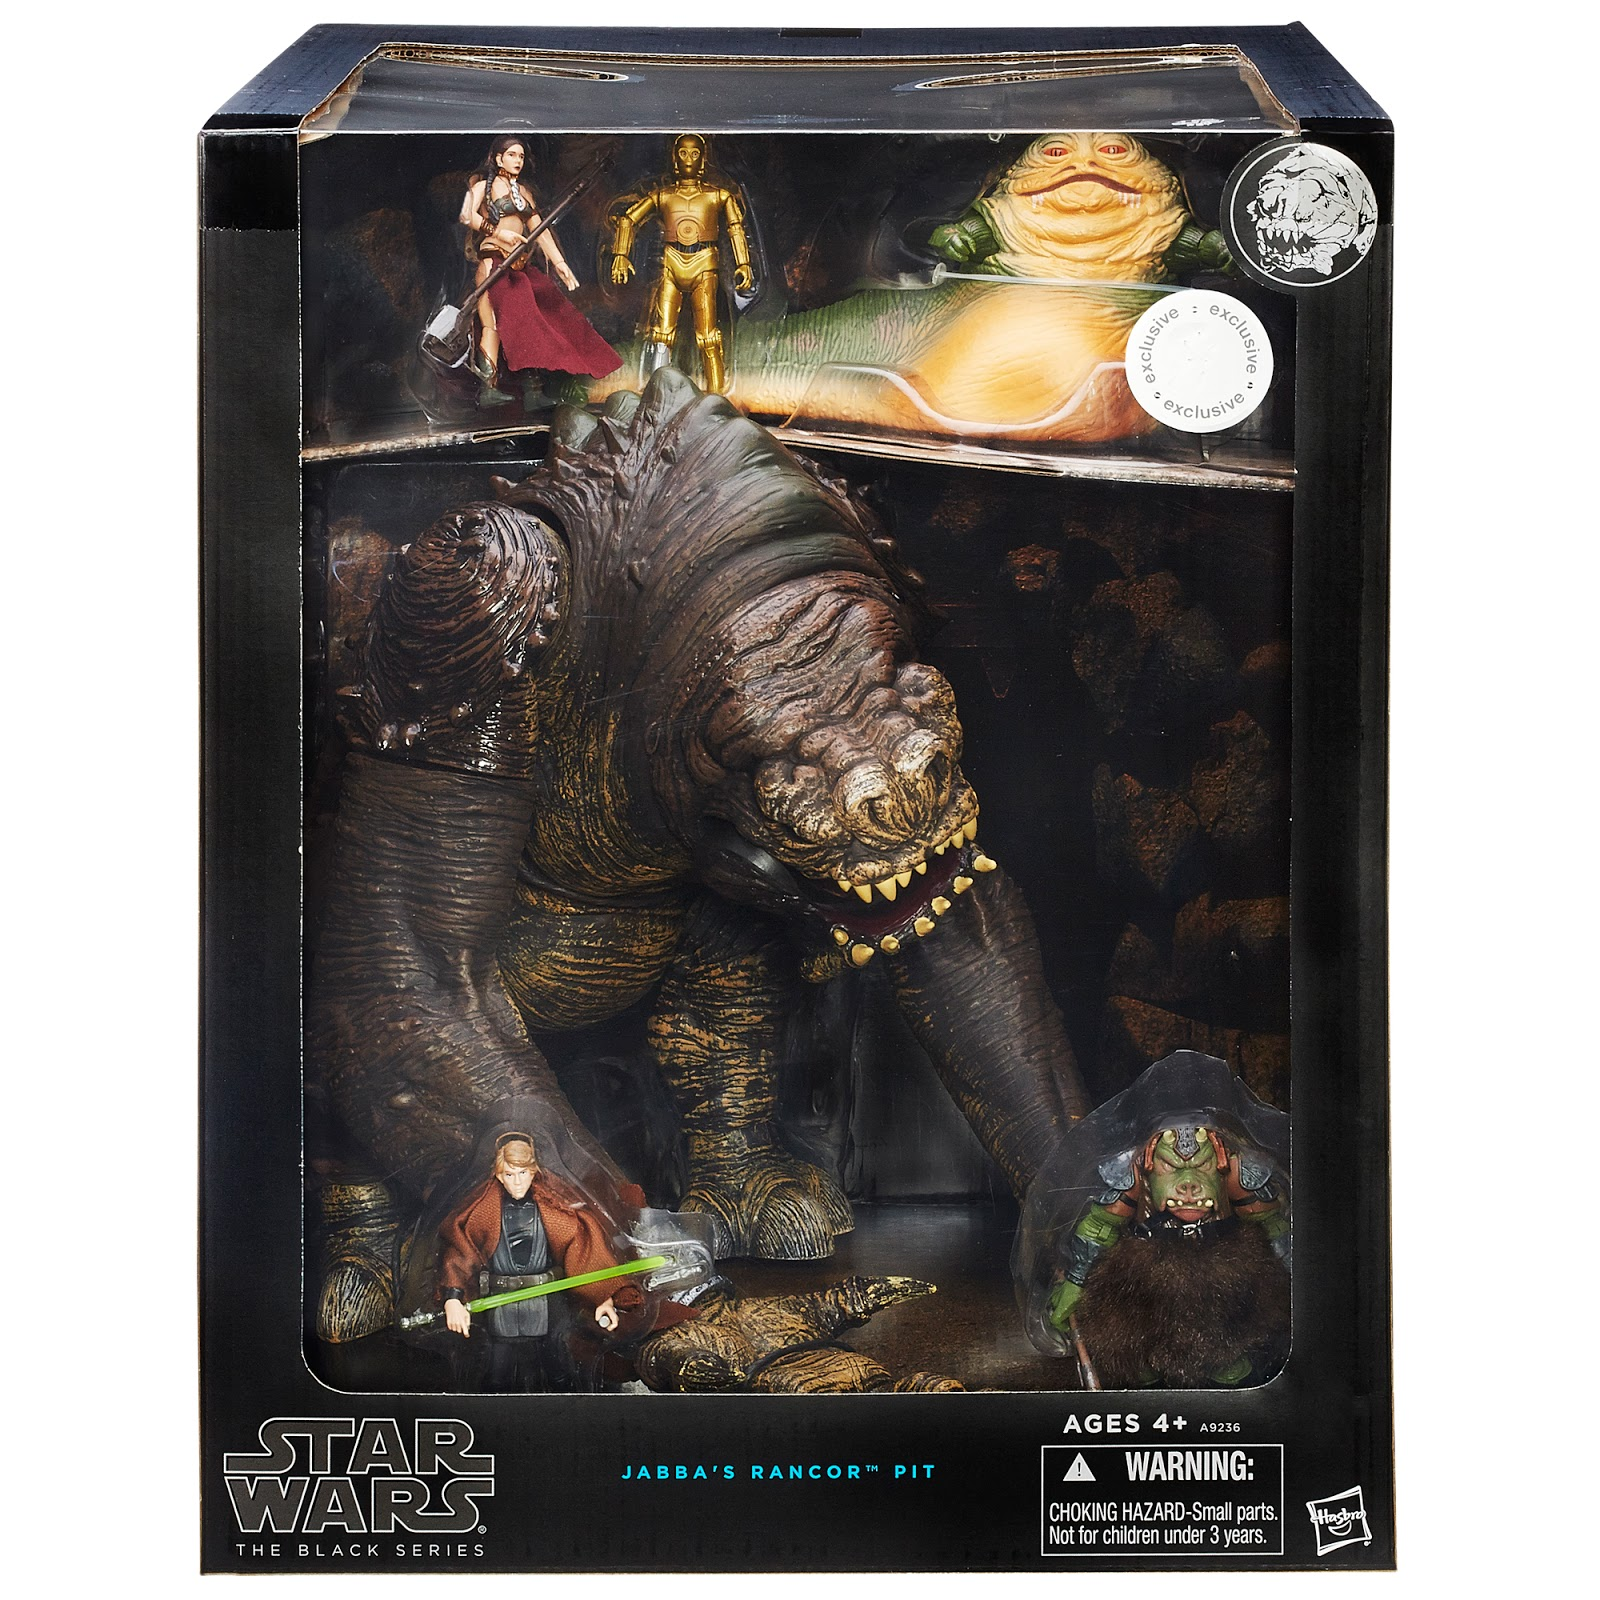 The Blot Says Sdcc 15 Exclusive Star Wars Black Series Jabba S